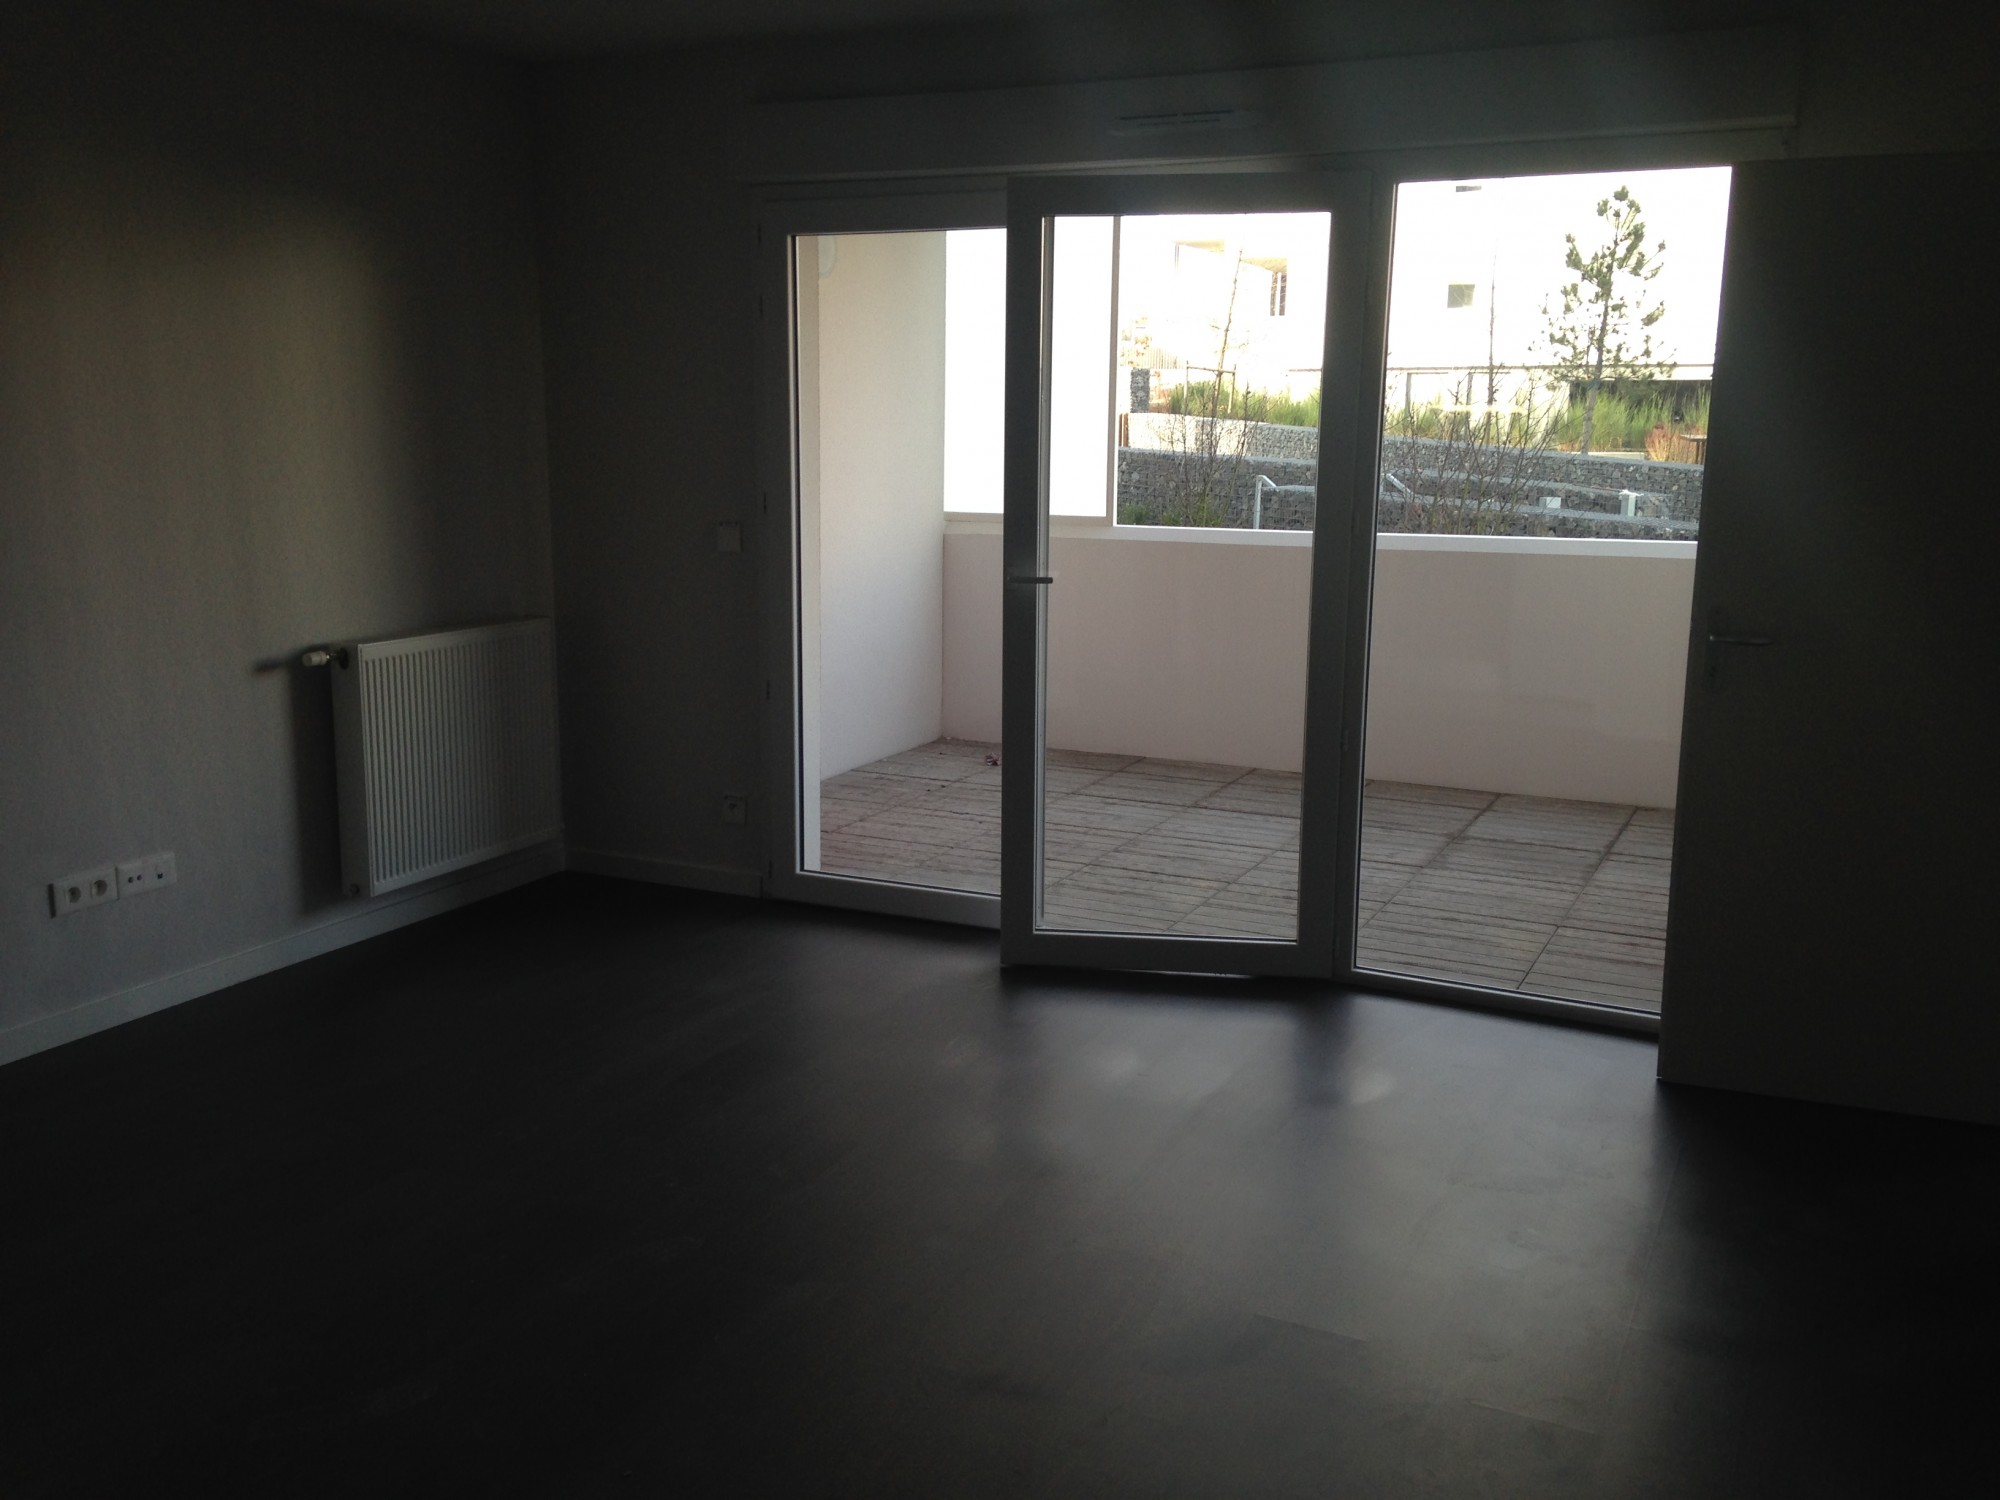 Location appartement t2 f2 lormont bru immobilier for Location appartement bordeaux pellegrin t2